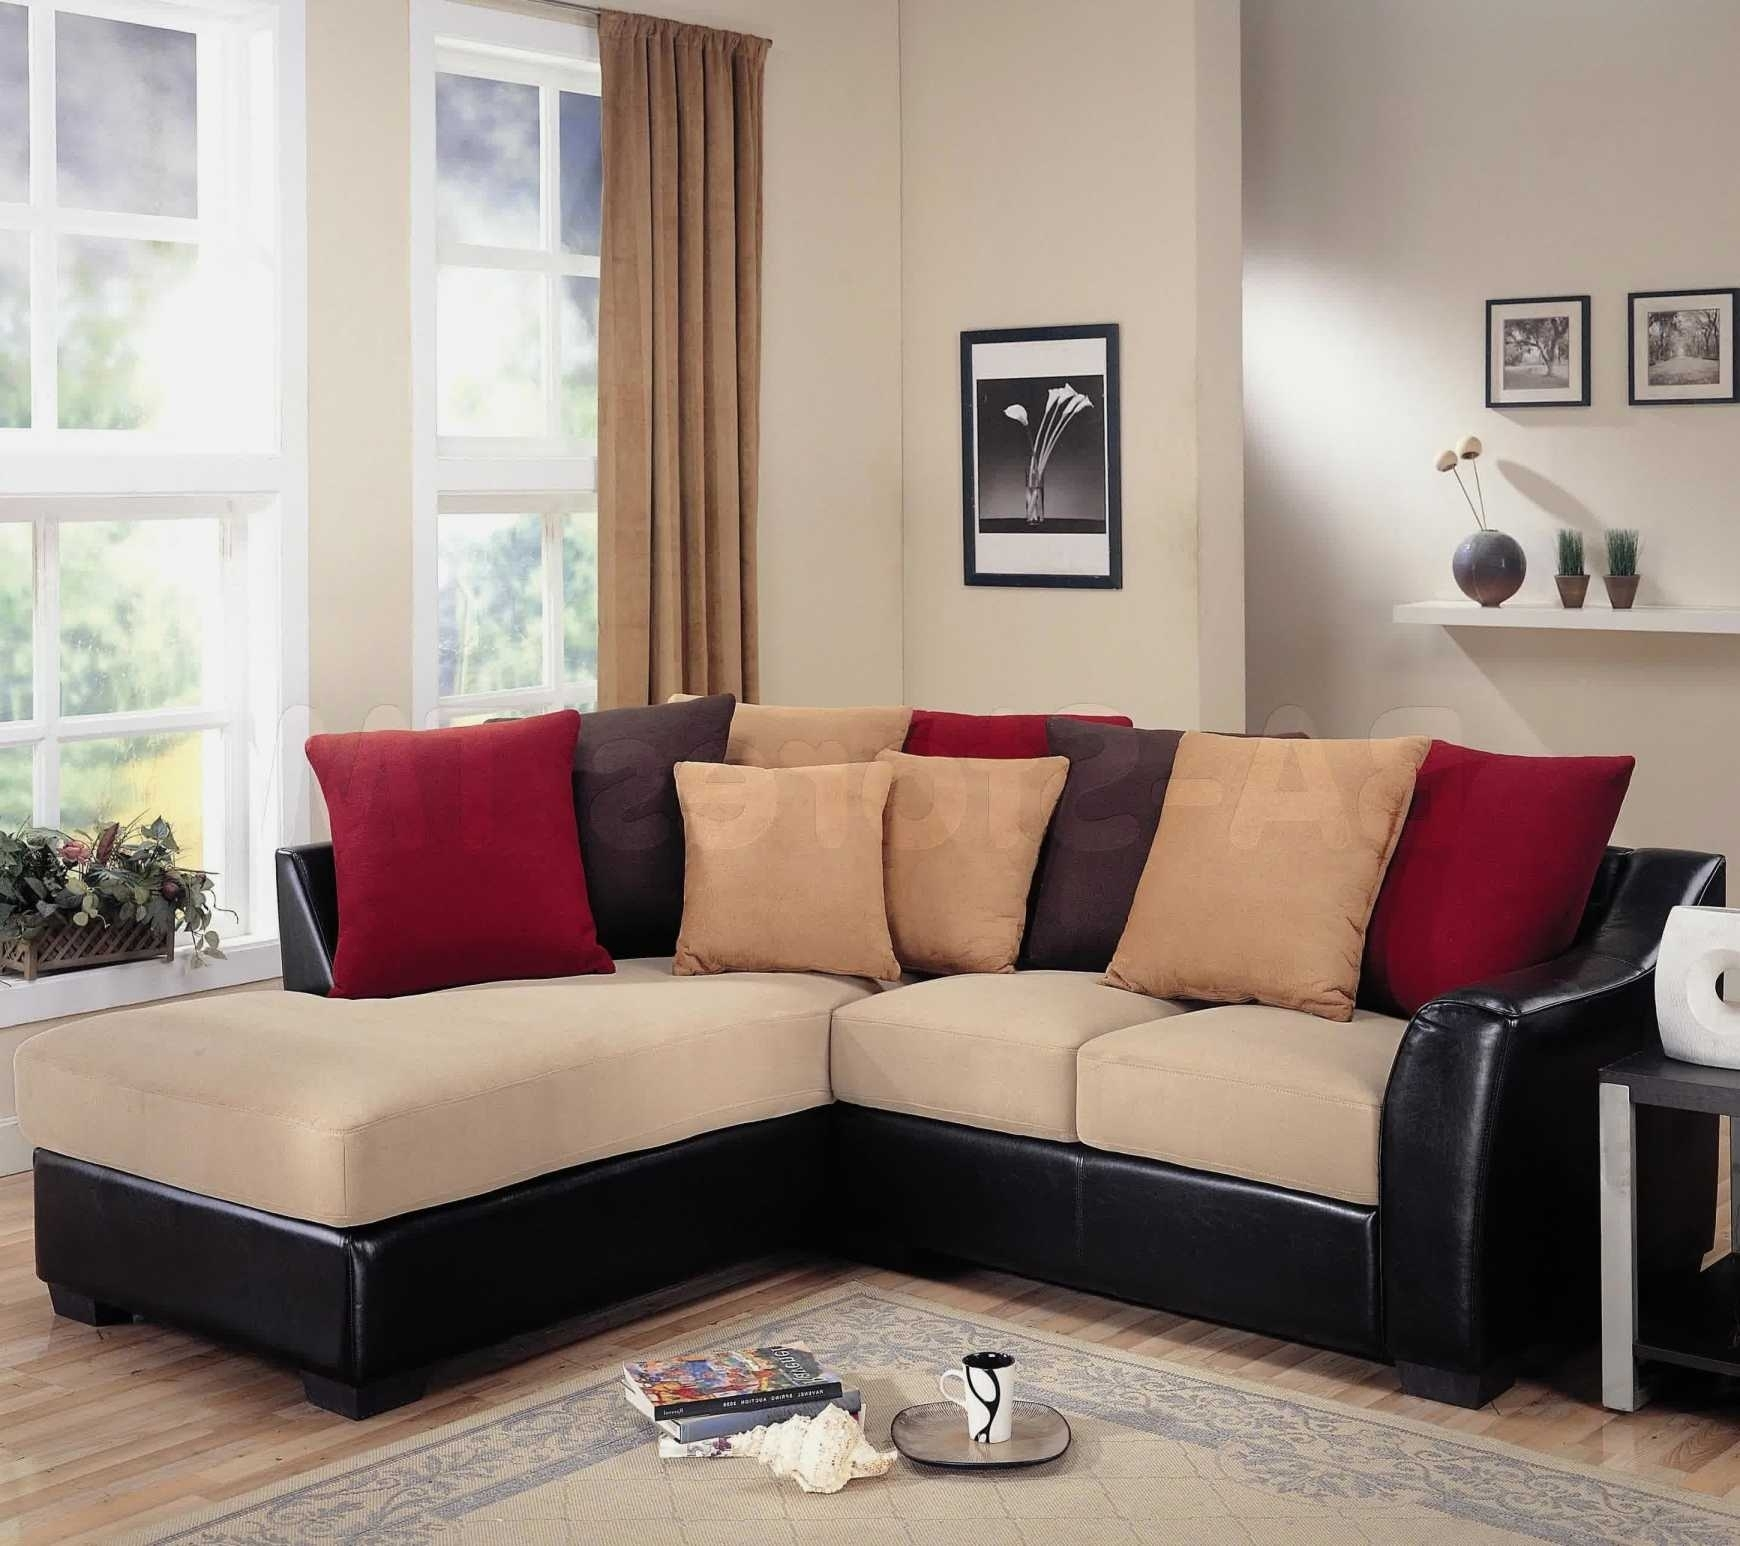 Loveseat : Furniture: Big Couches Inspirational Futon Big Lots Within Lubbock Sectional Sofas (View 9 of 10)